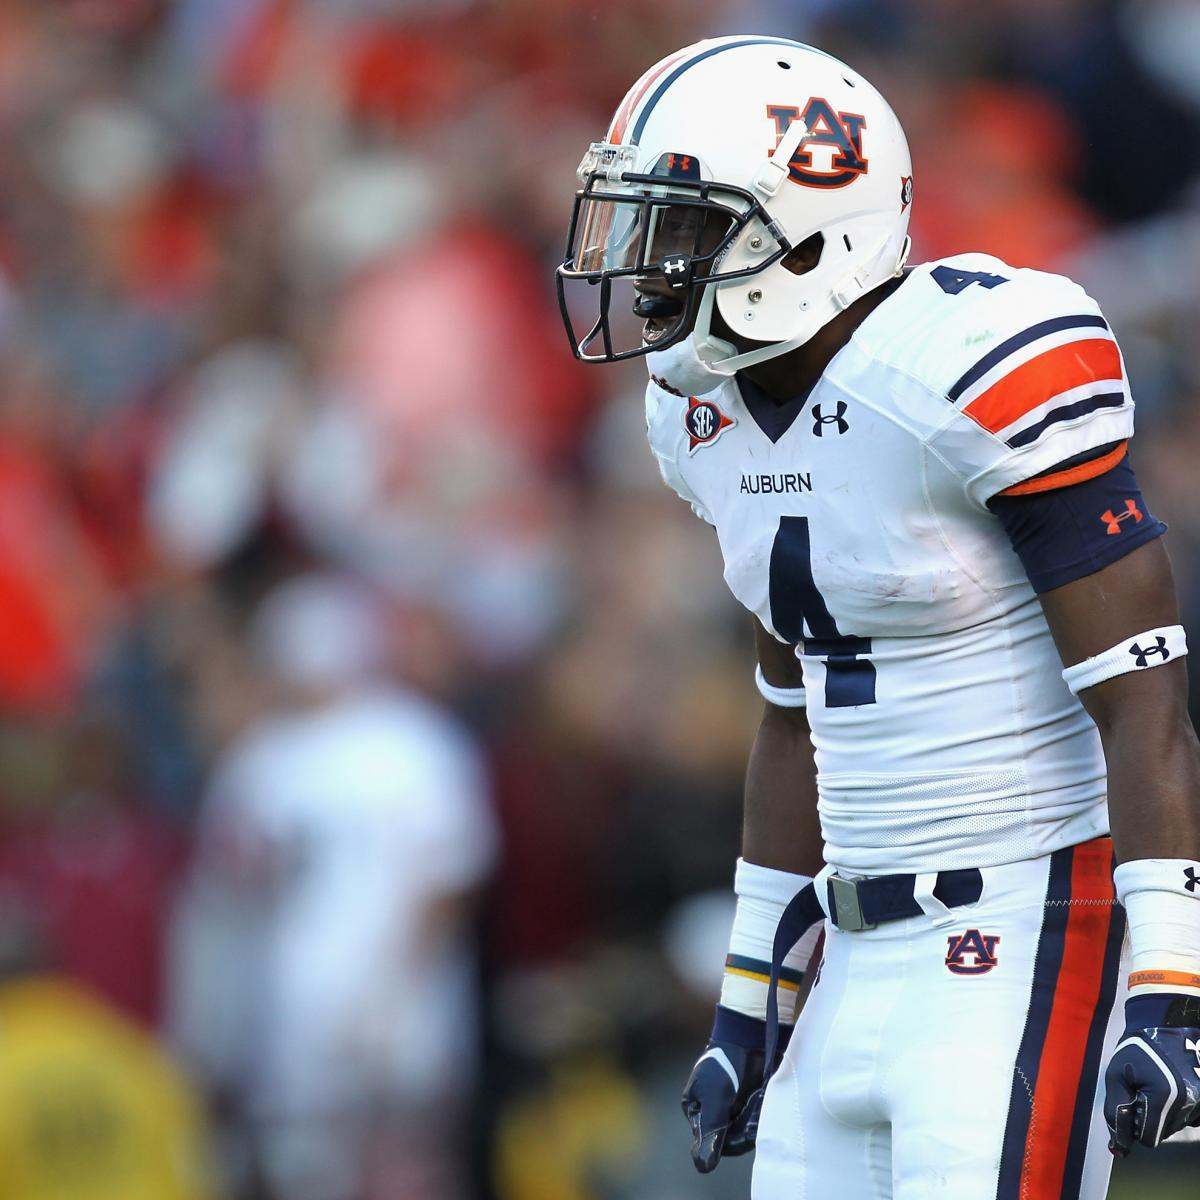 Get the latest Auburn Tigers news scores stats standings rumors and more from ESPN